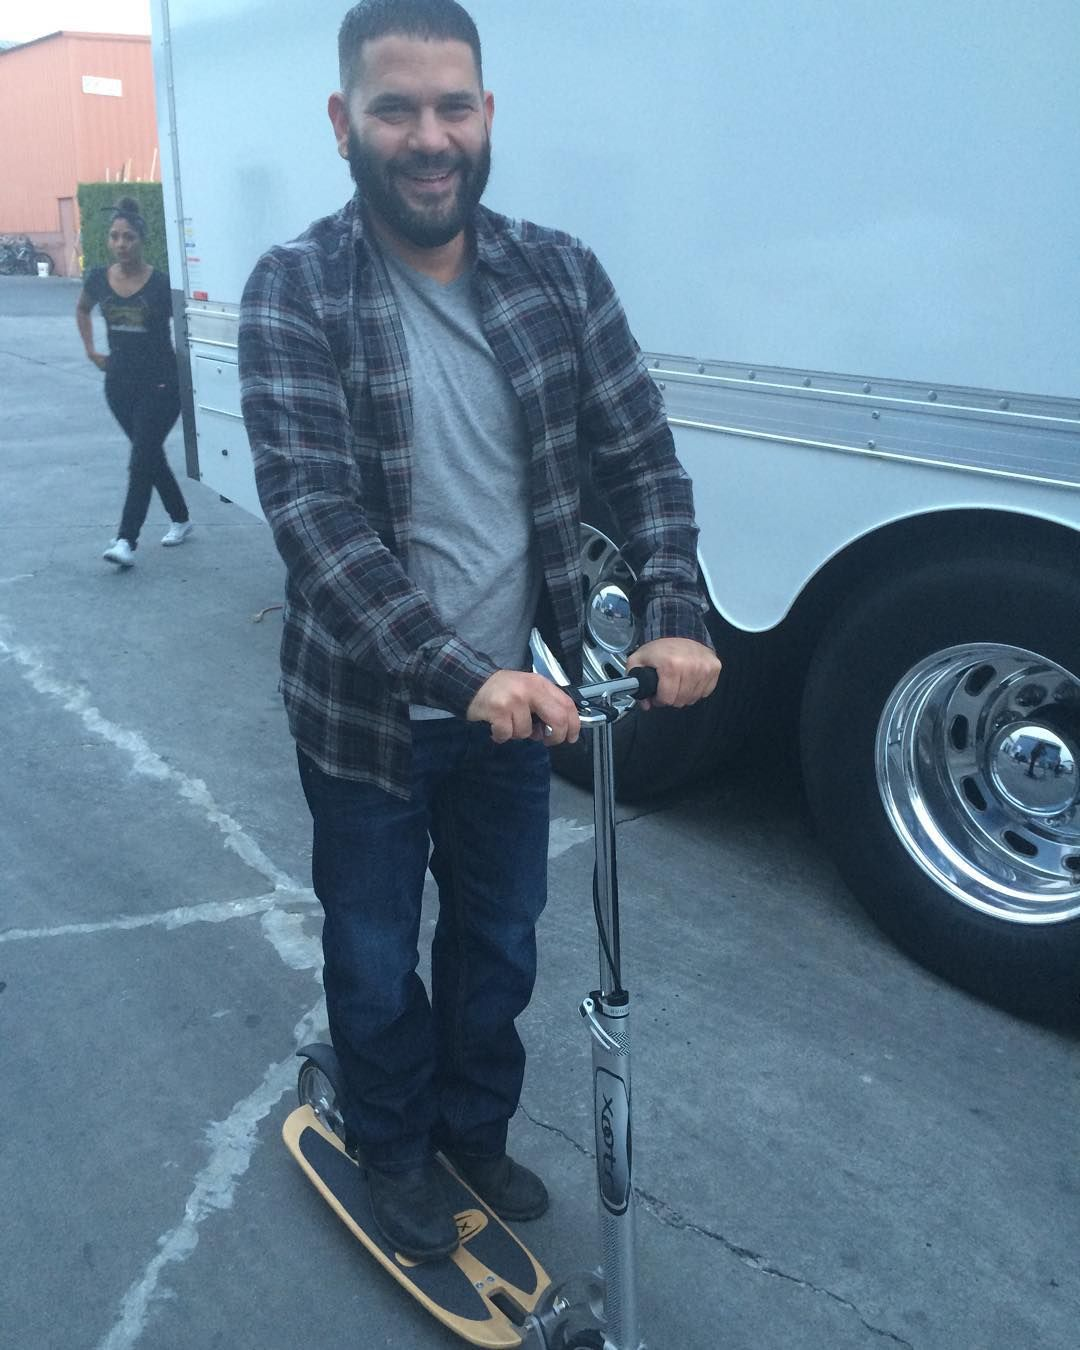 @guillermodiazreal is so freakin cute on his scooter. He goes from Scooter to Torture in under 10 seconds #ScandalKatie - @ktqlowes